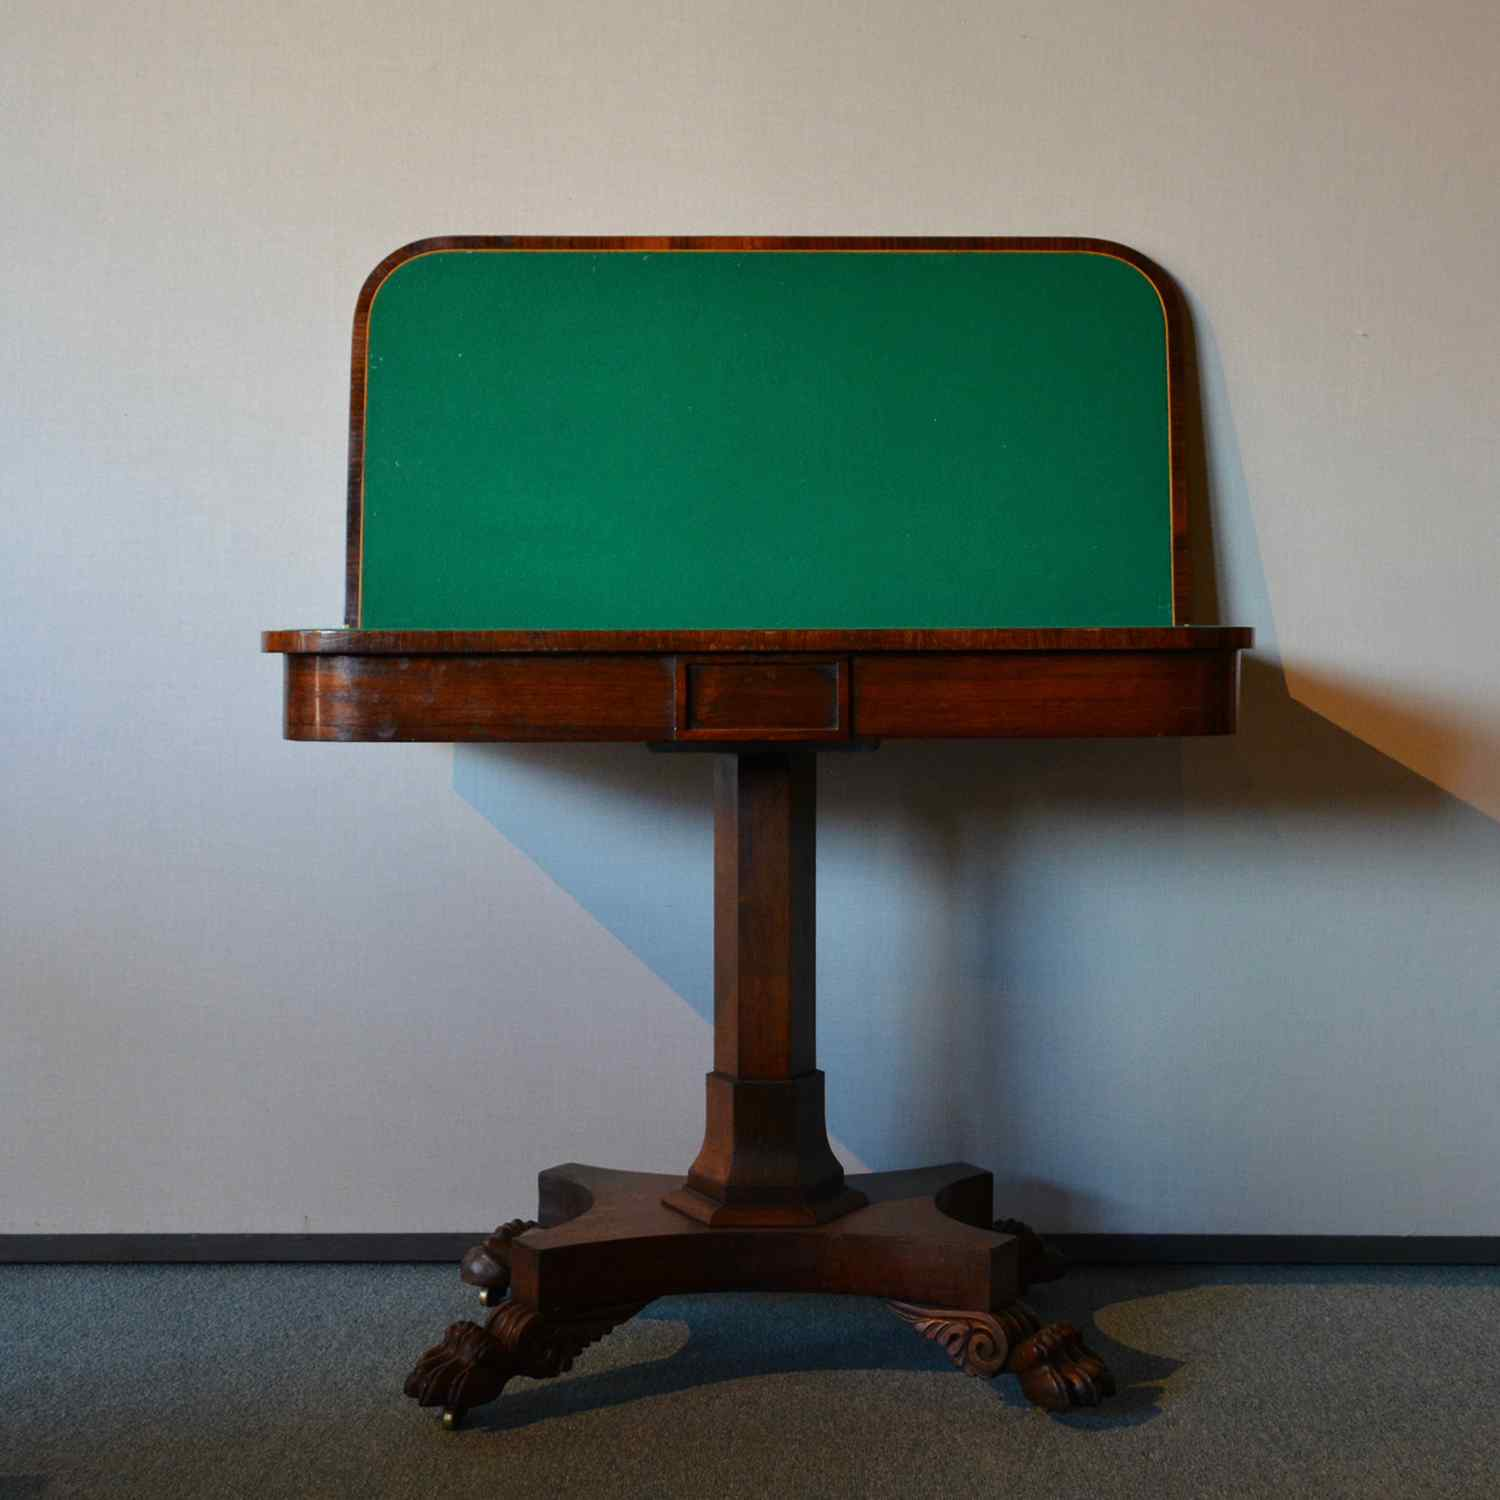 Antique game table France 19th century